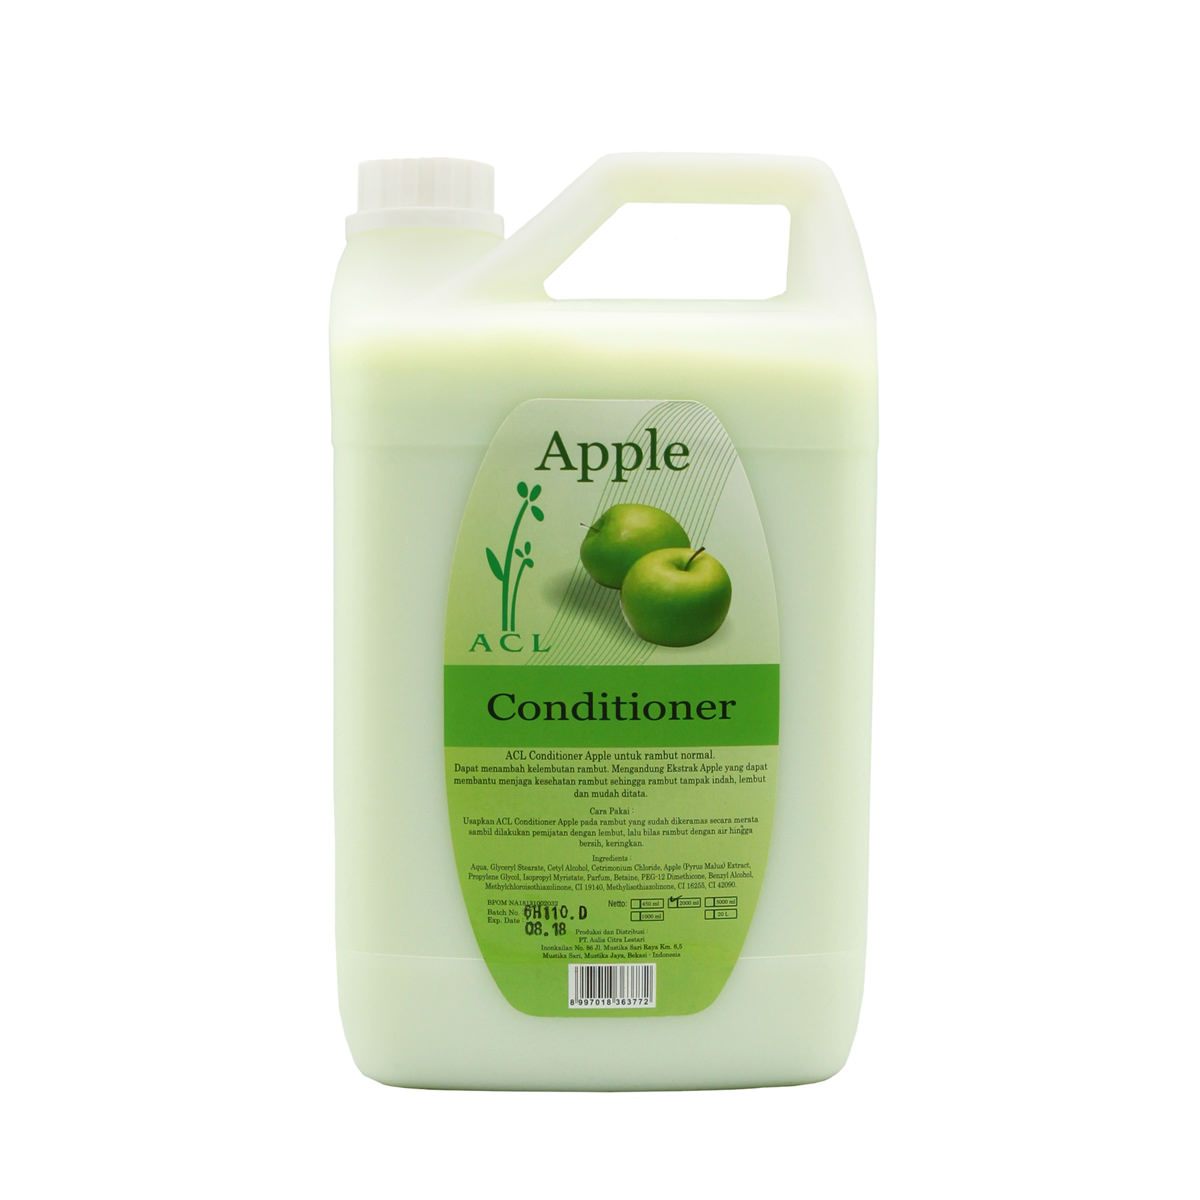 ACL-Conditioner-Apple-(2000-ml)-sfw1